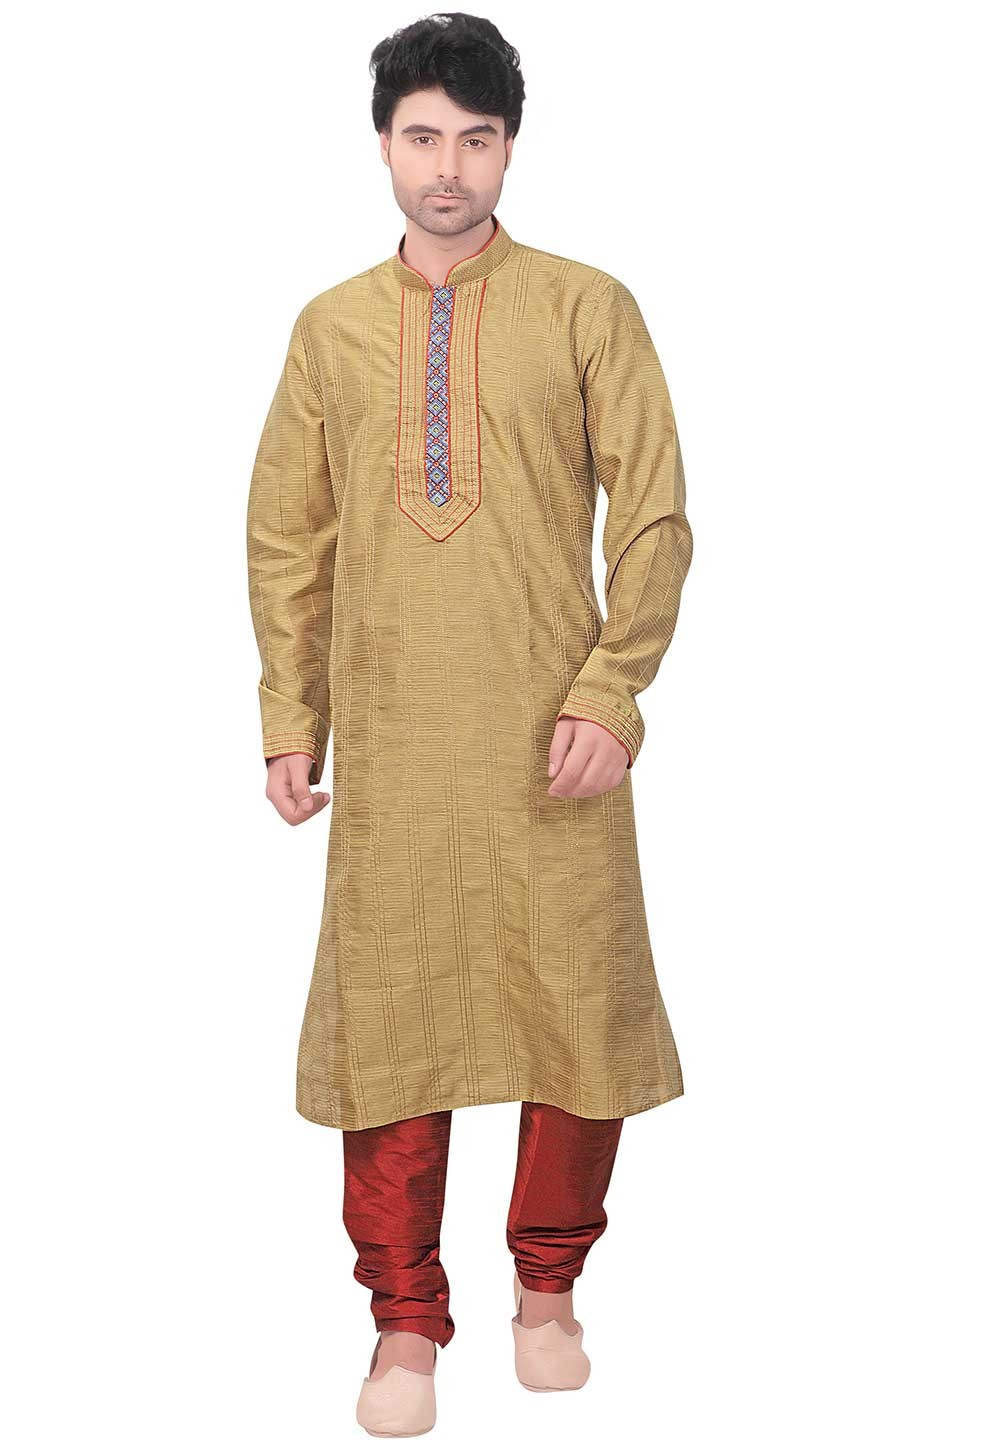 Designer: Buy Kurta Pyjama Online in Golden Colour